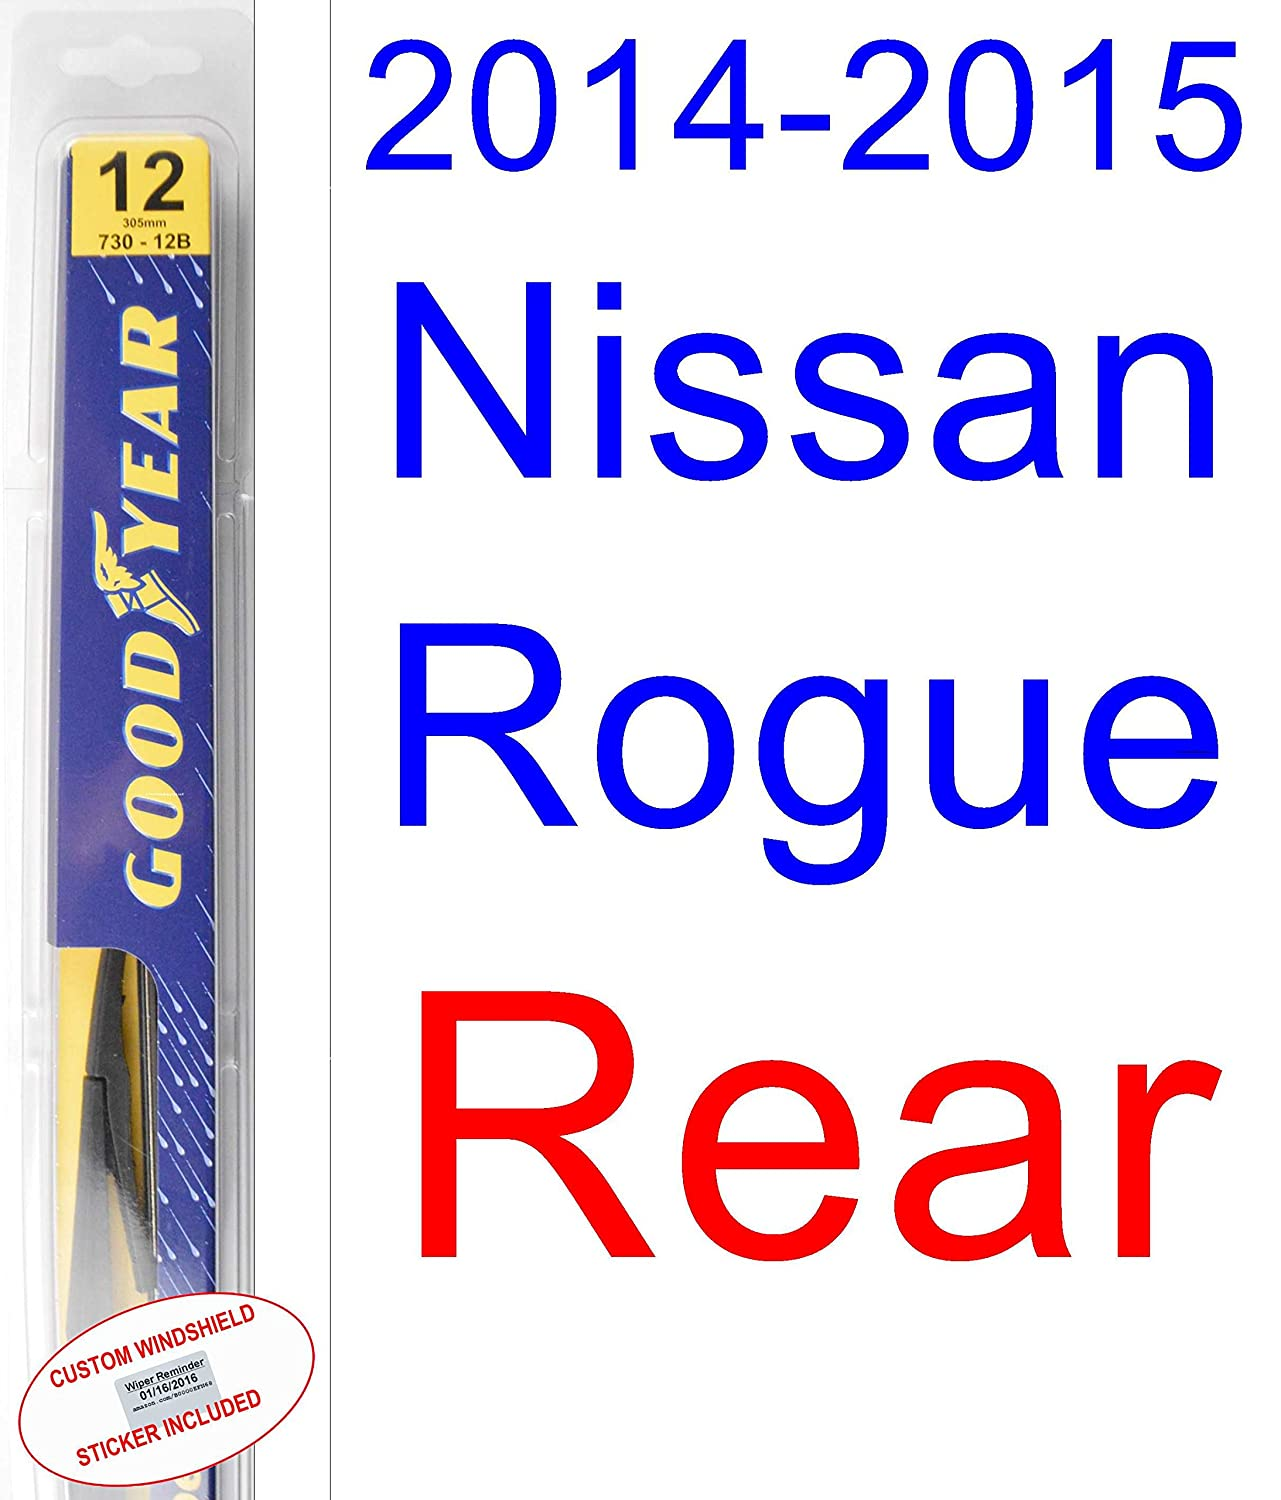 Amazon.com: 2014-2015 Nissan Rogue Replacement Wiper Blade Set/Kit (Set of 2 Blades) (Goodyear Wiper Blades-Premium): Automotive